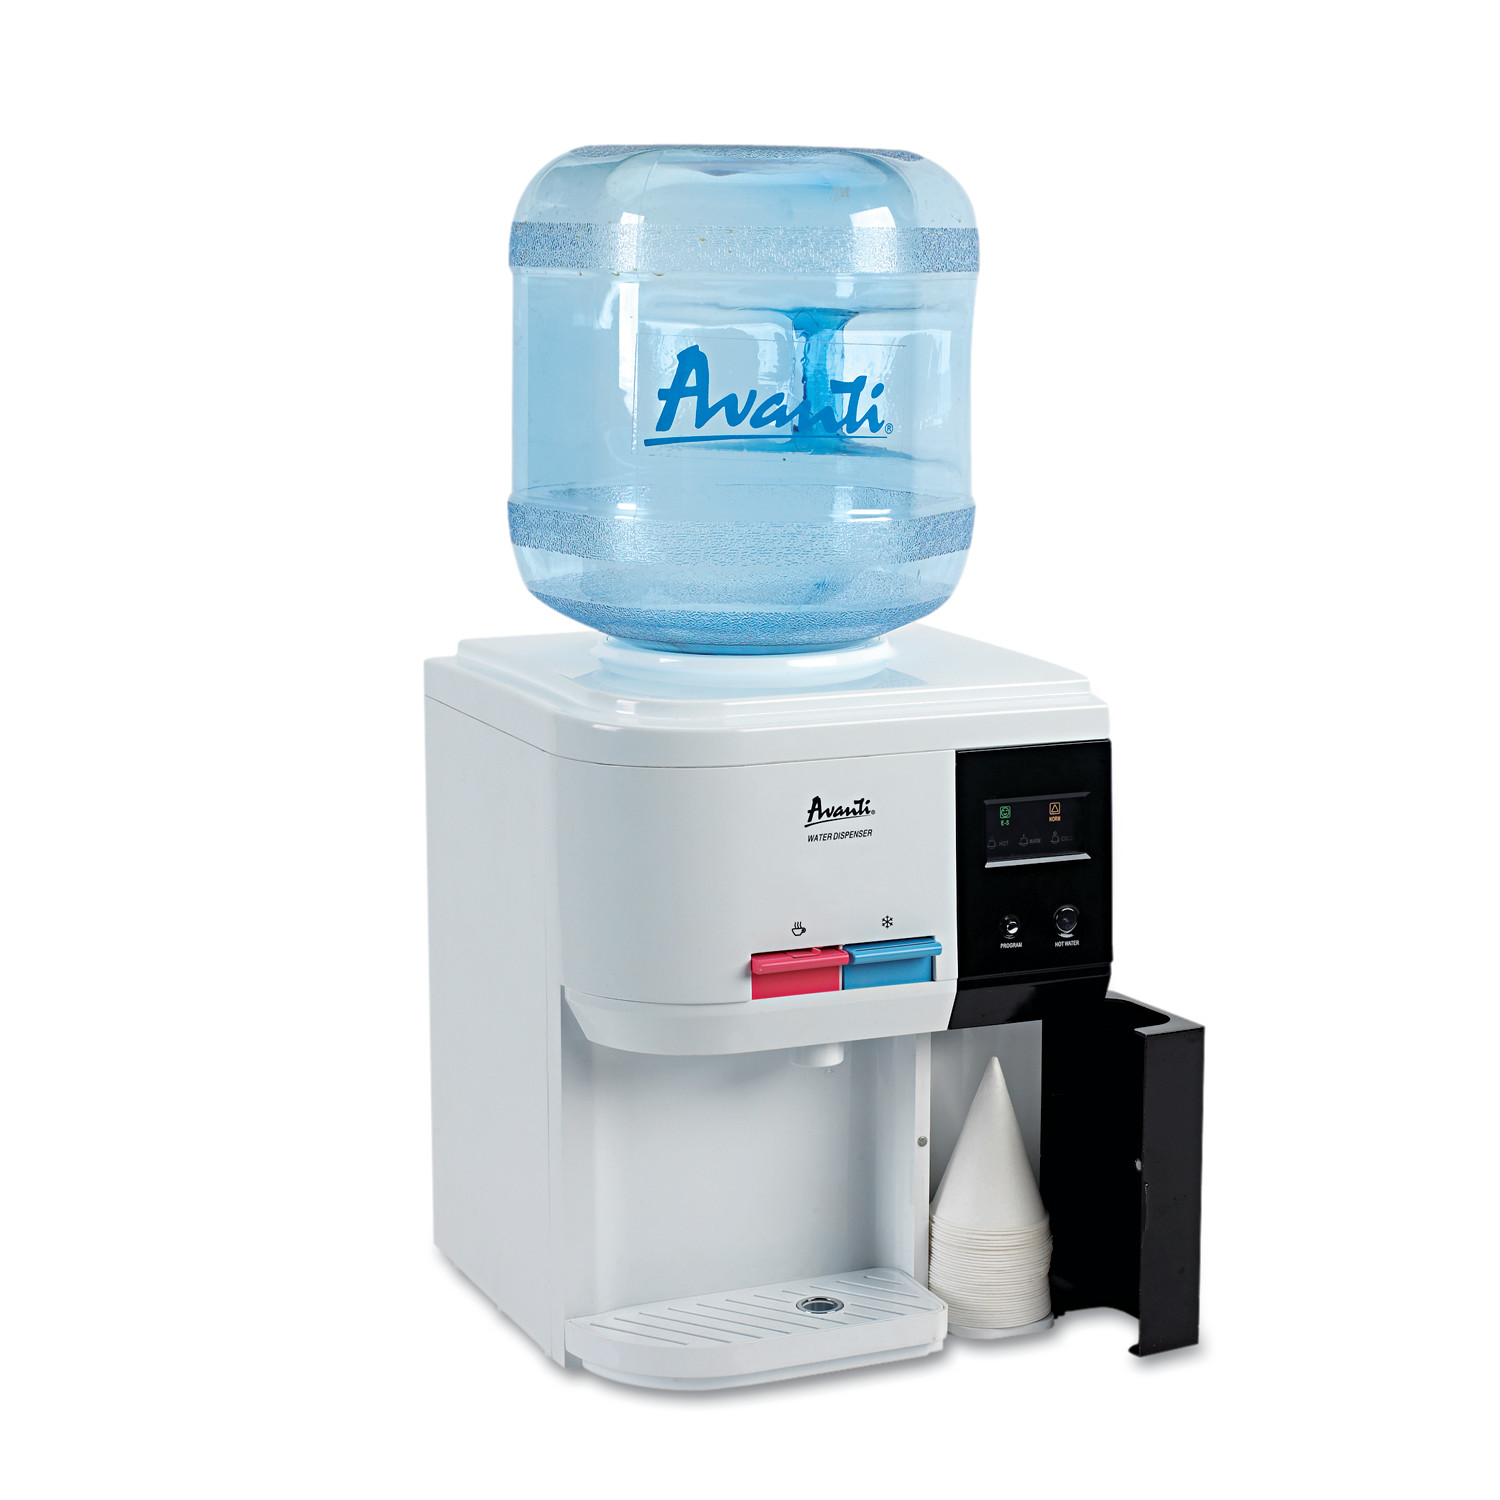 "Avanti Tabletop Thermoelectric Water Cooler, 13 1/4"" dia. x 15 3/4h, White"